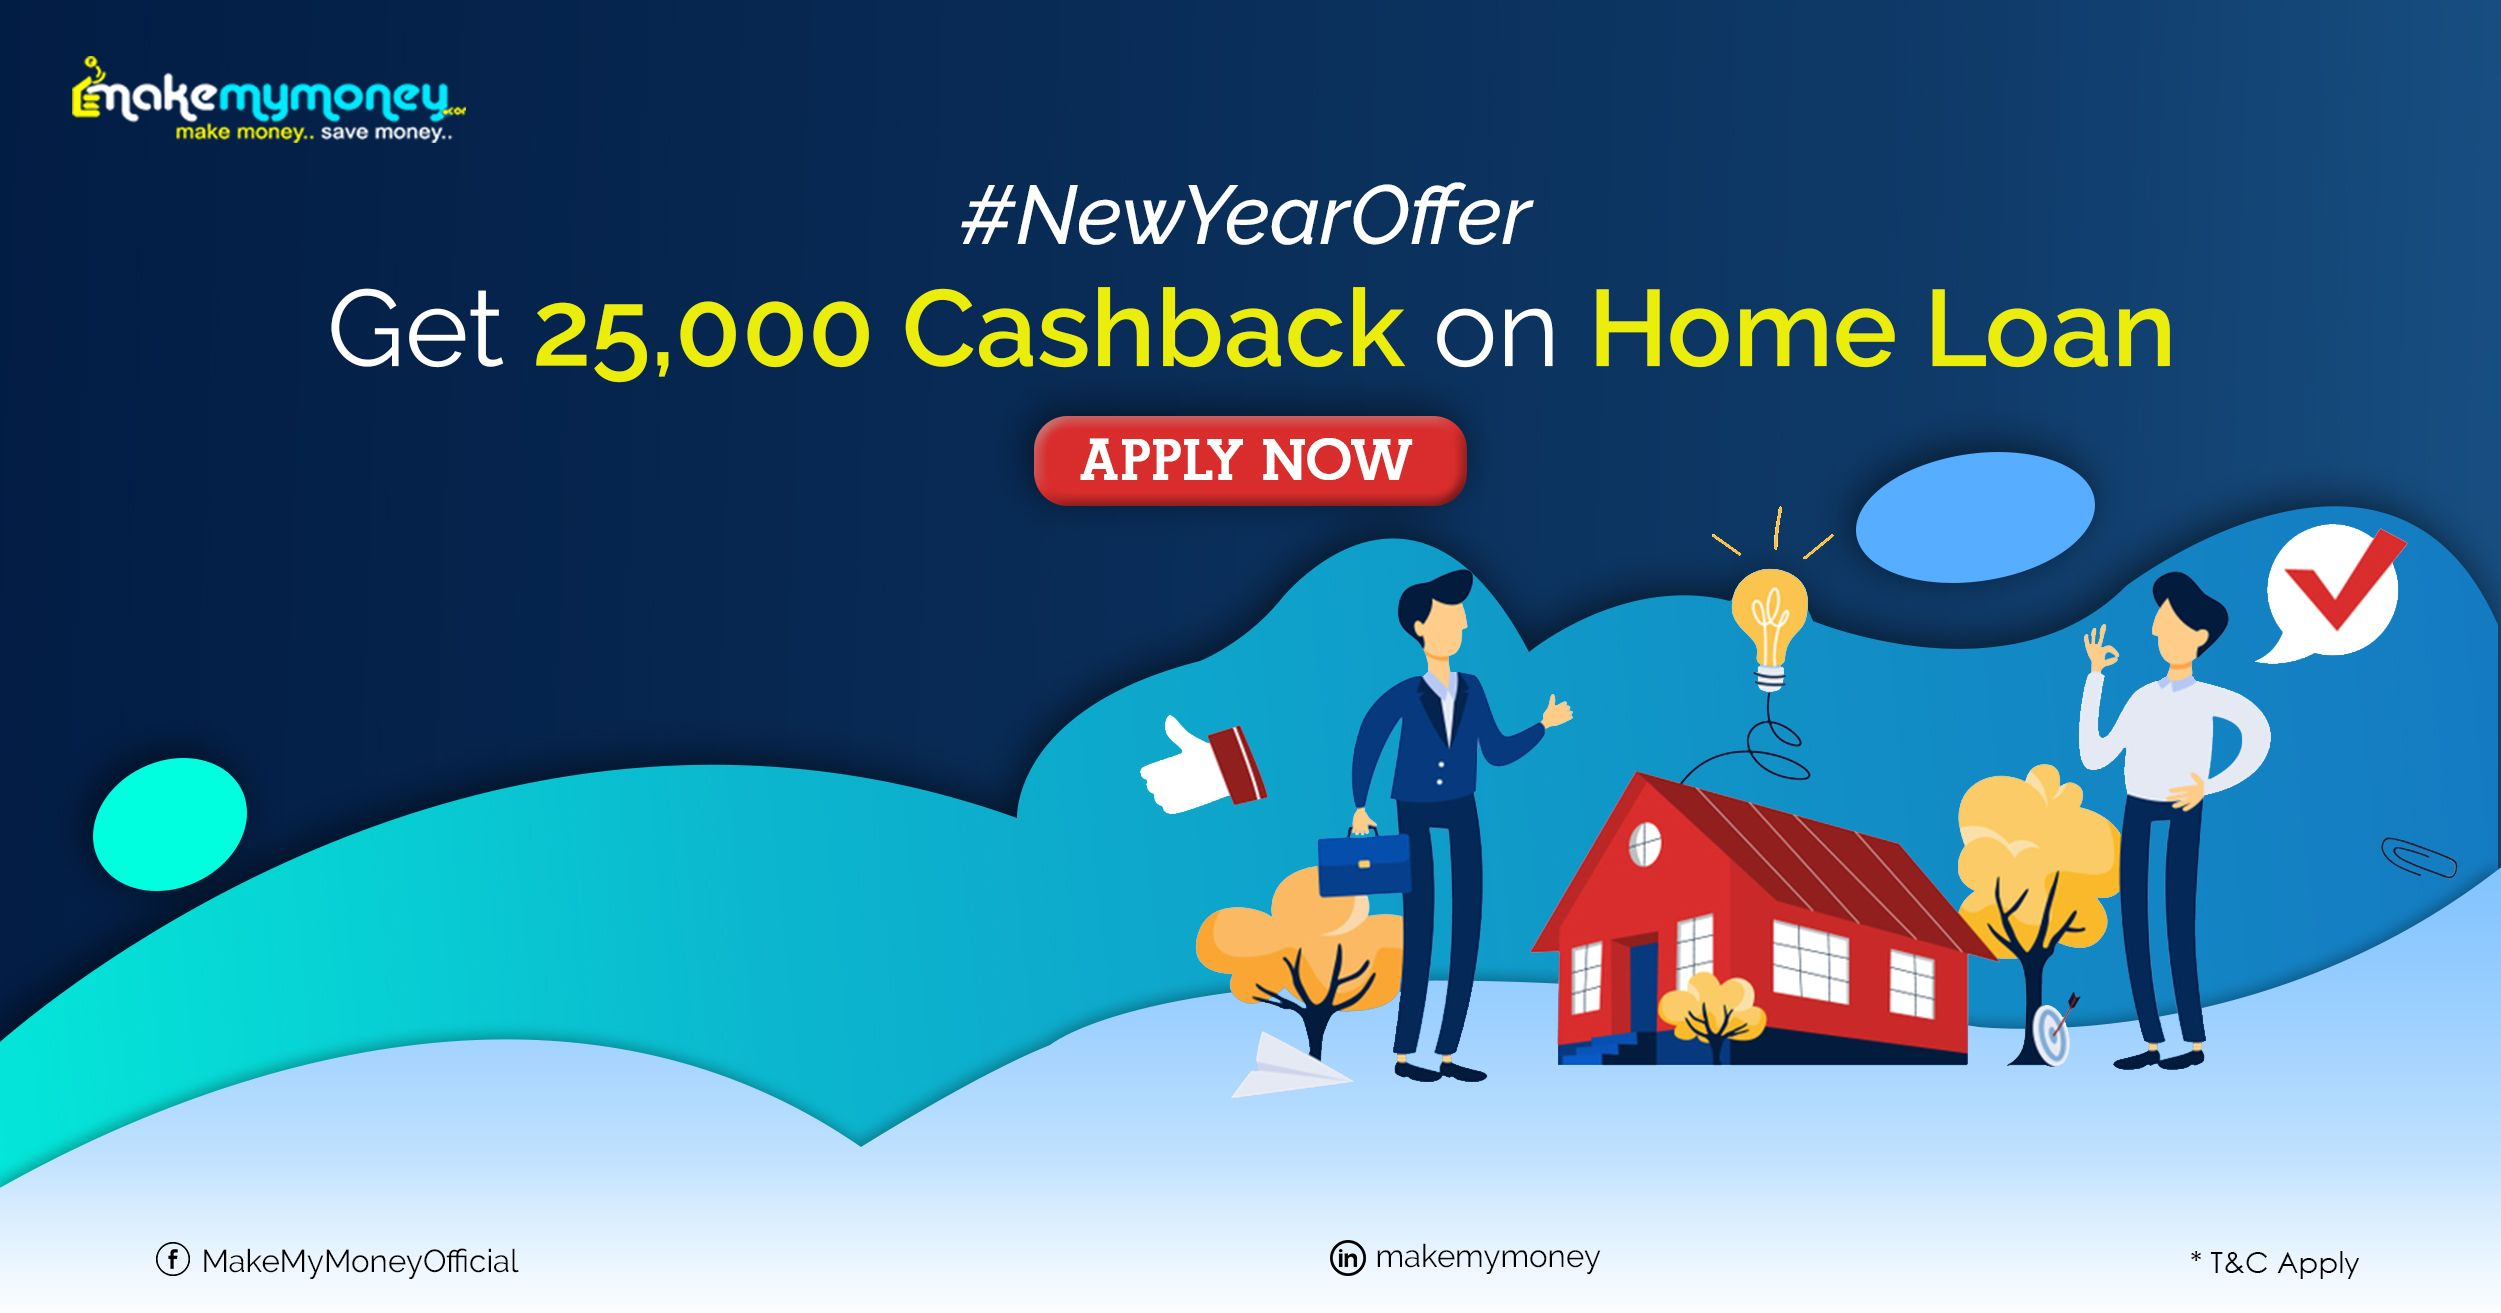 Get Home Loan With Offer Makemymoney Debt Relief Programs Home Loans New Year Offers